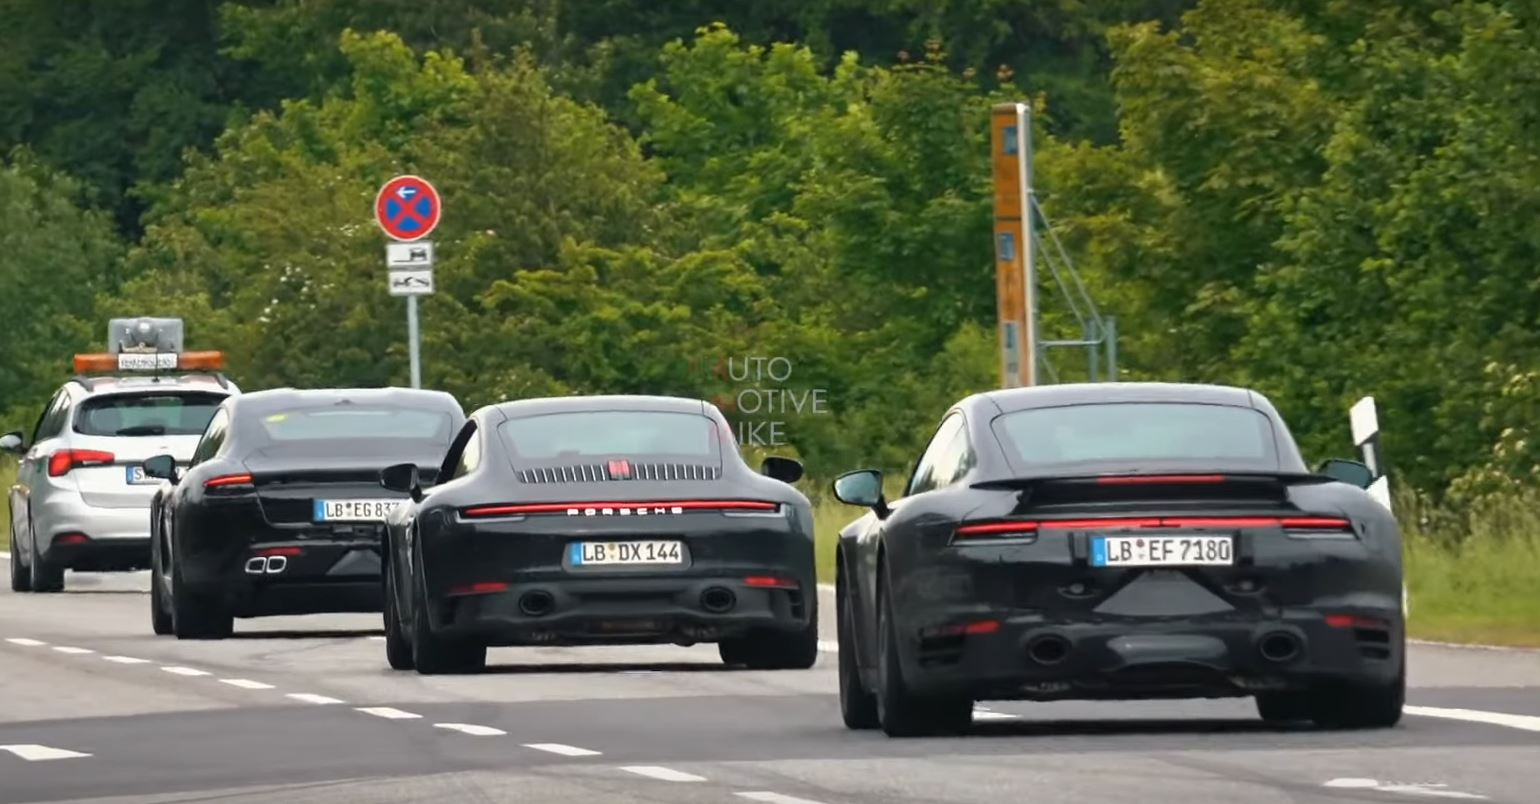 Porsche Taycan Spied at the Nurburgring, Sports Suspension Is